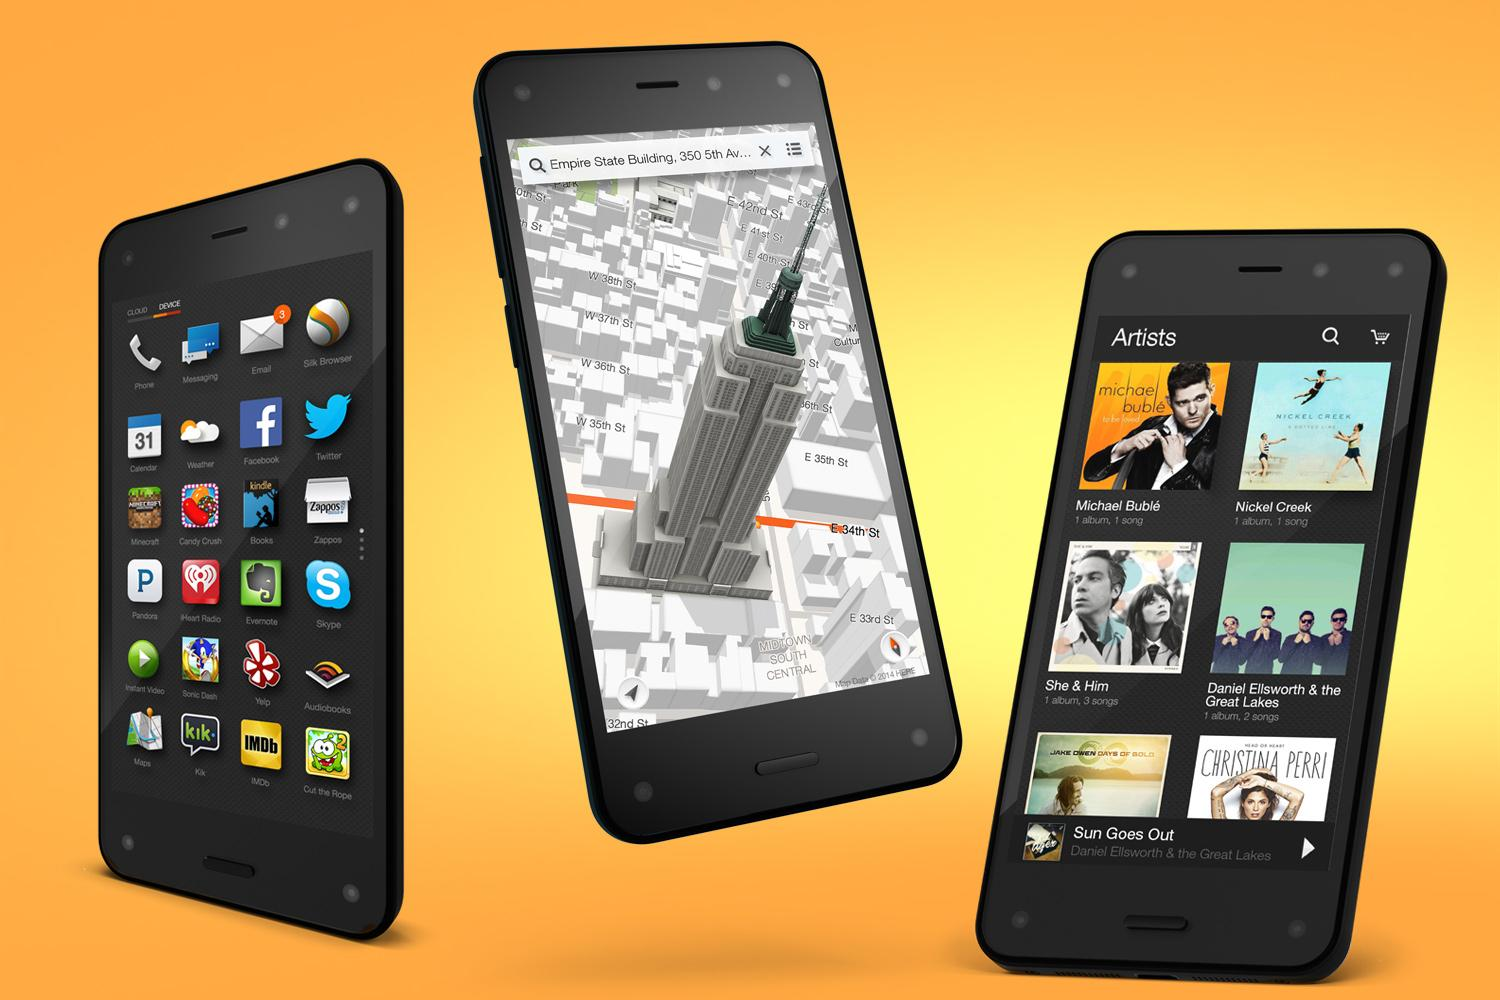 Who is the winner in the smartphone race? Amazon Fire could lead